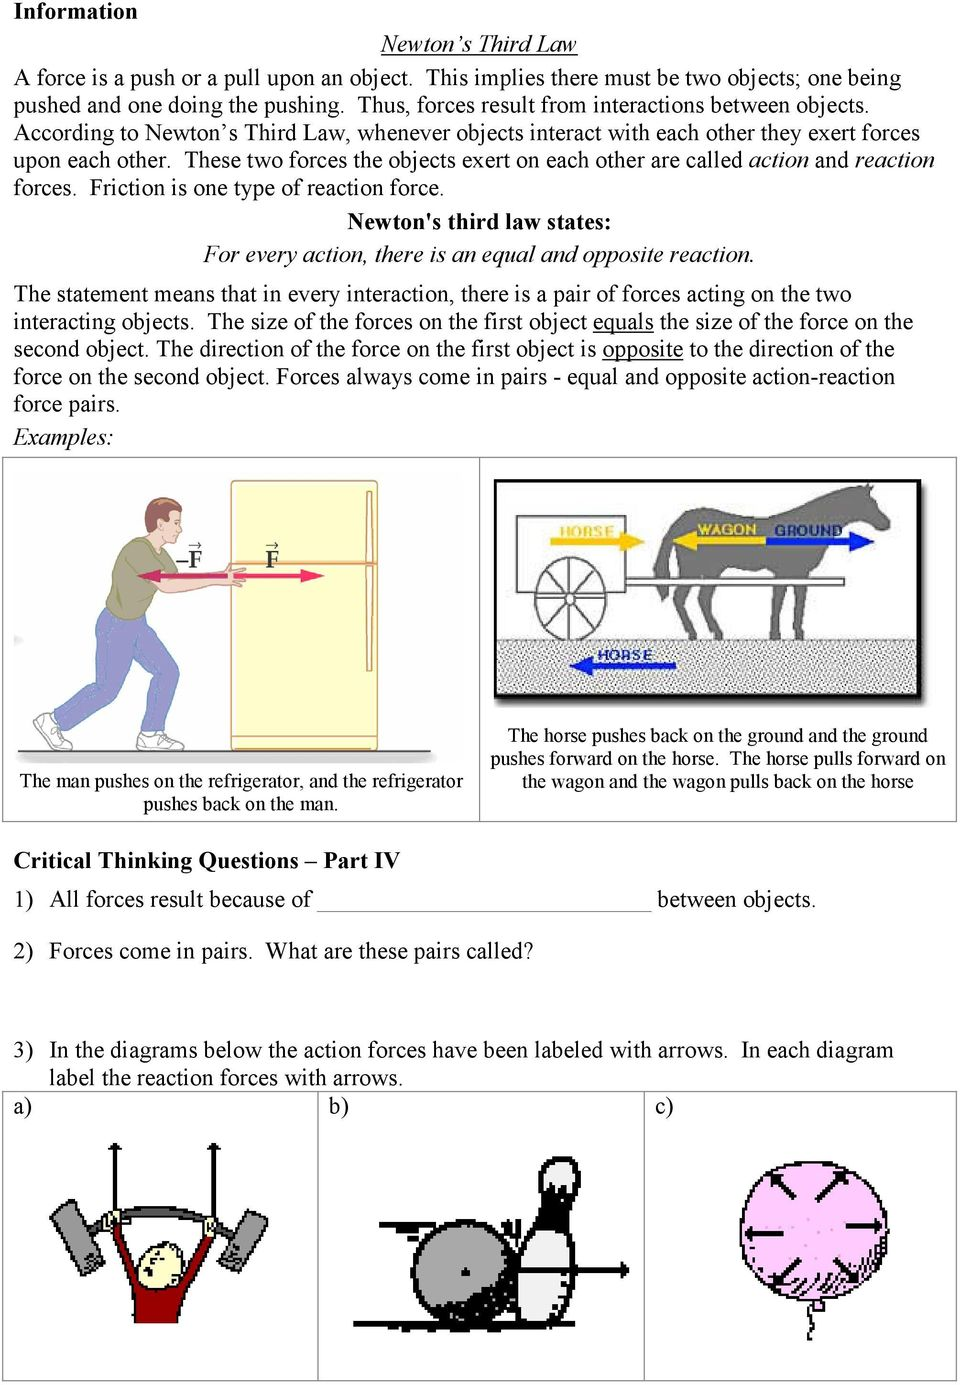 Newton s laws of motion pdf these two forces the objects exert on each other are called action and reaction forces pooptronica Choice Image